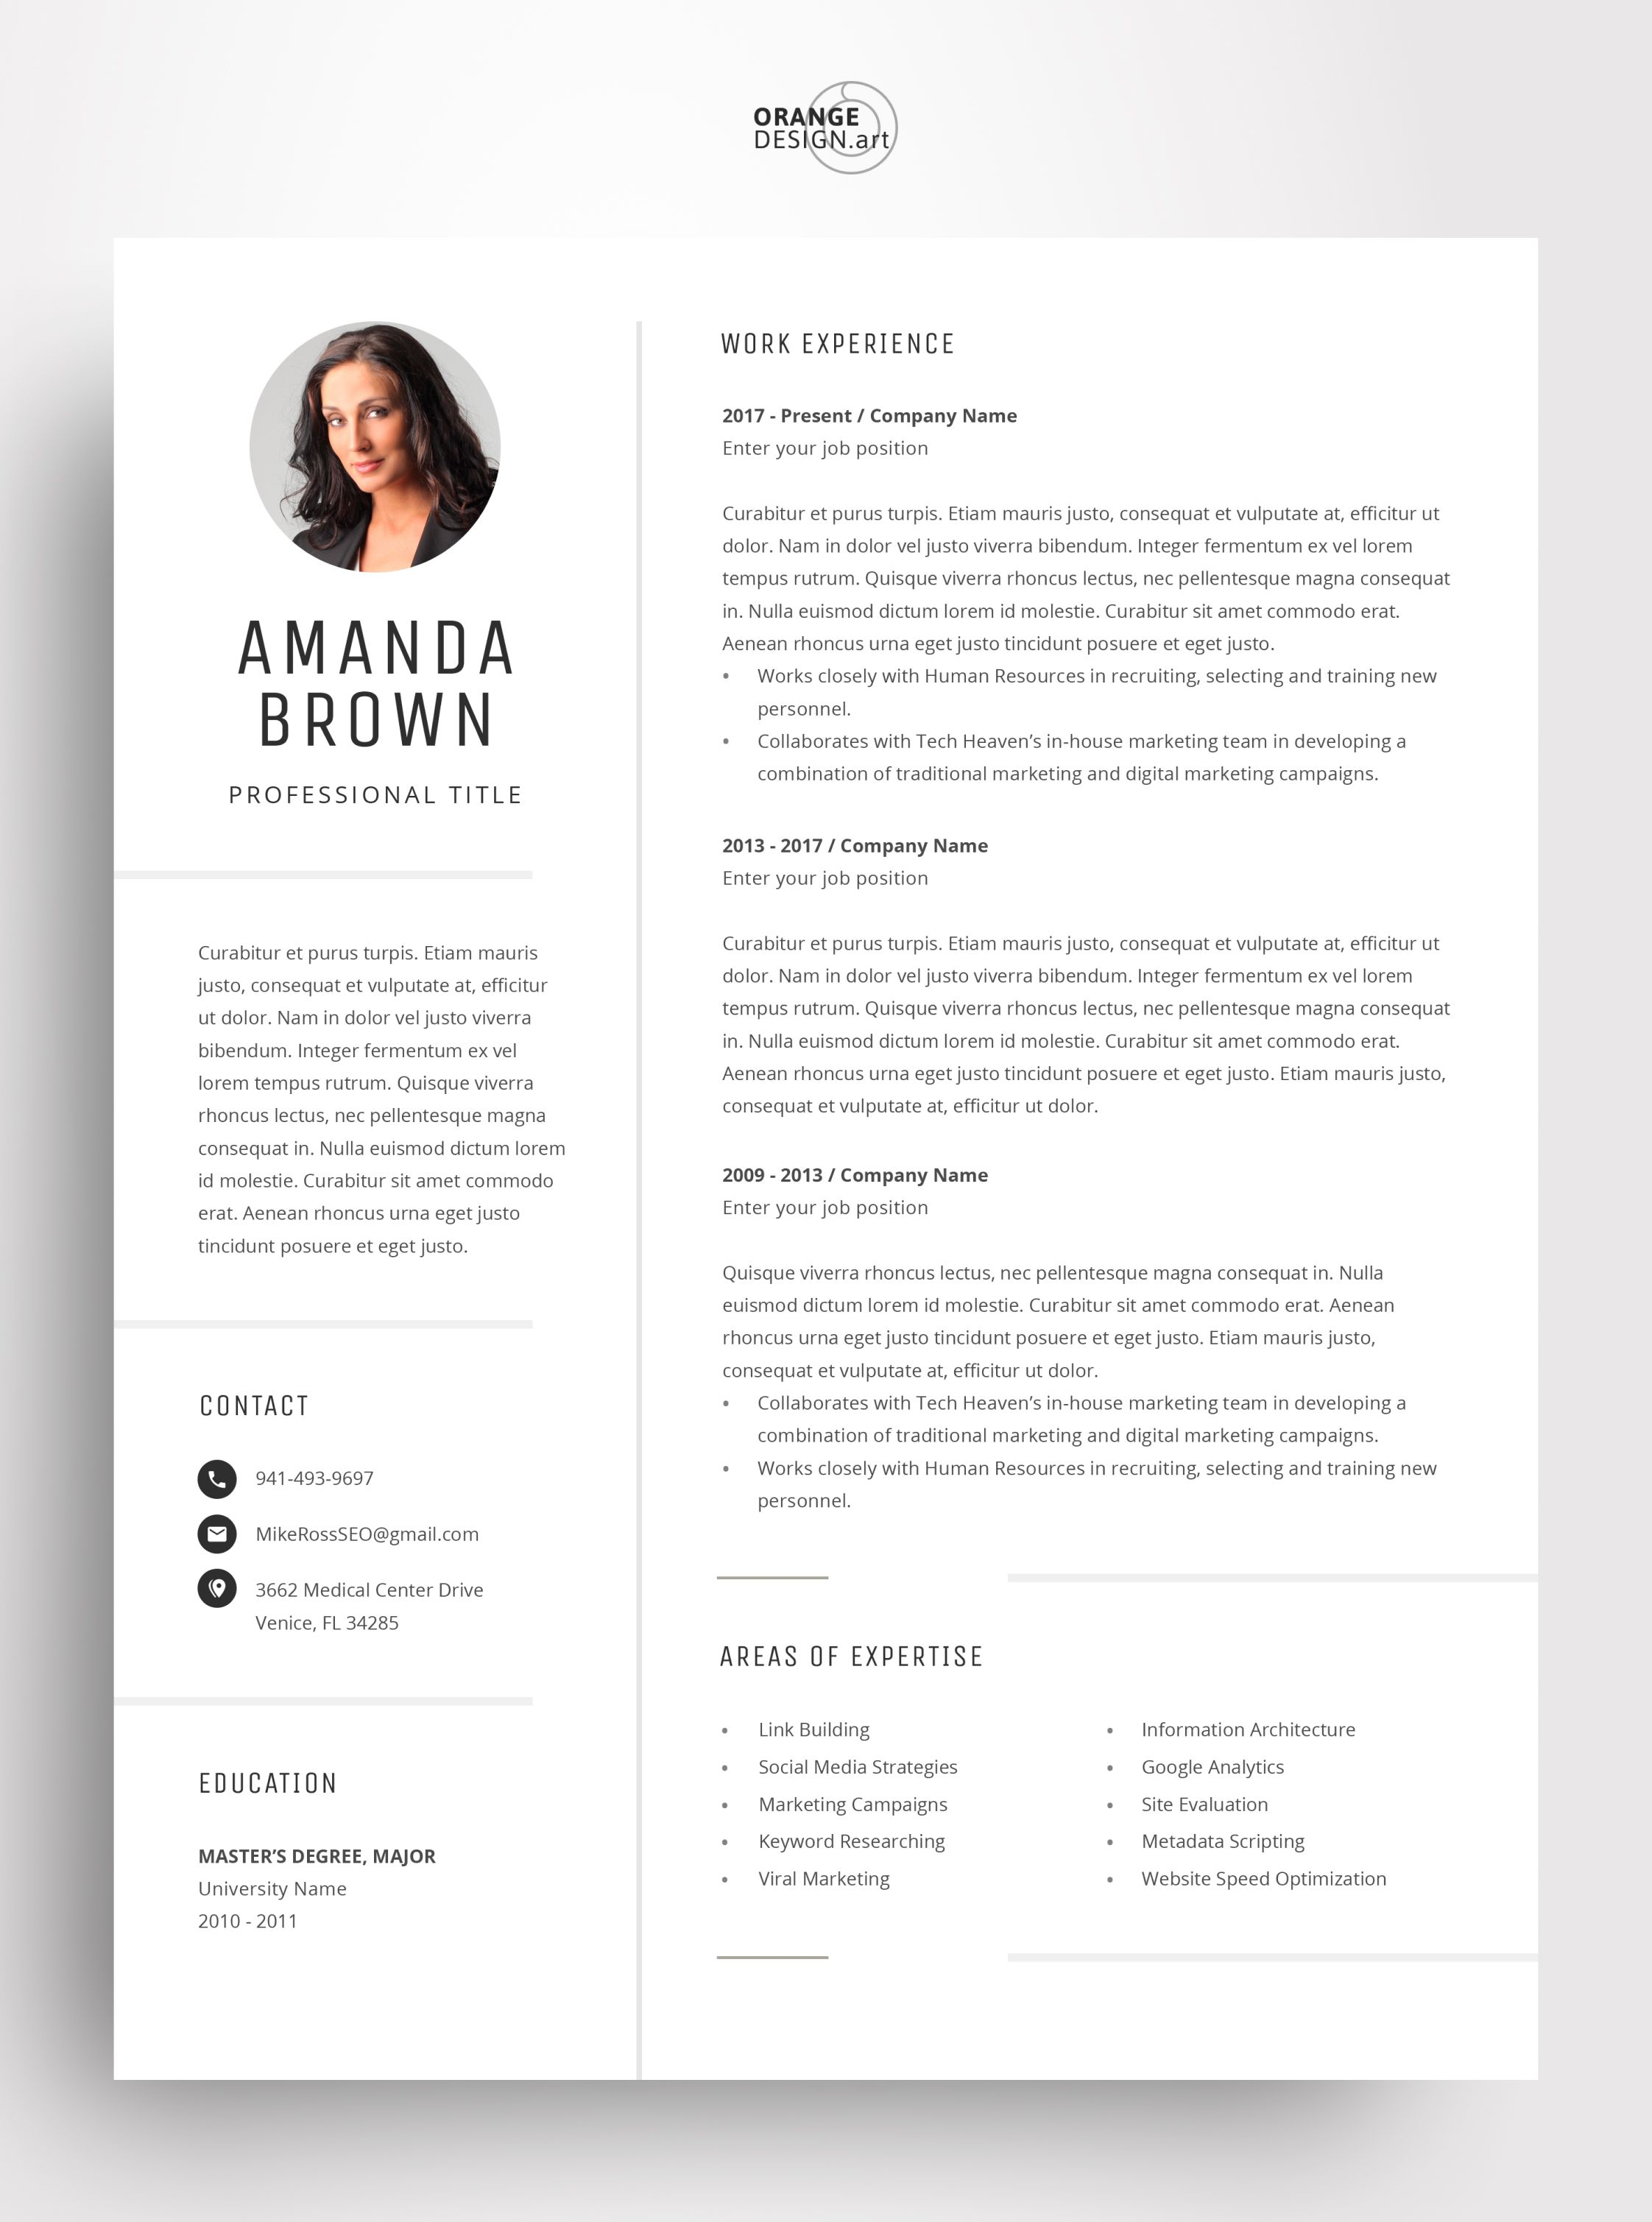 Minimalist Resume Template For Word Project Manager Cv Free Etsy Minimalist Resume Template Resume Template Marketing Resume